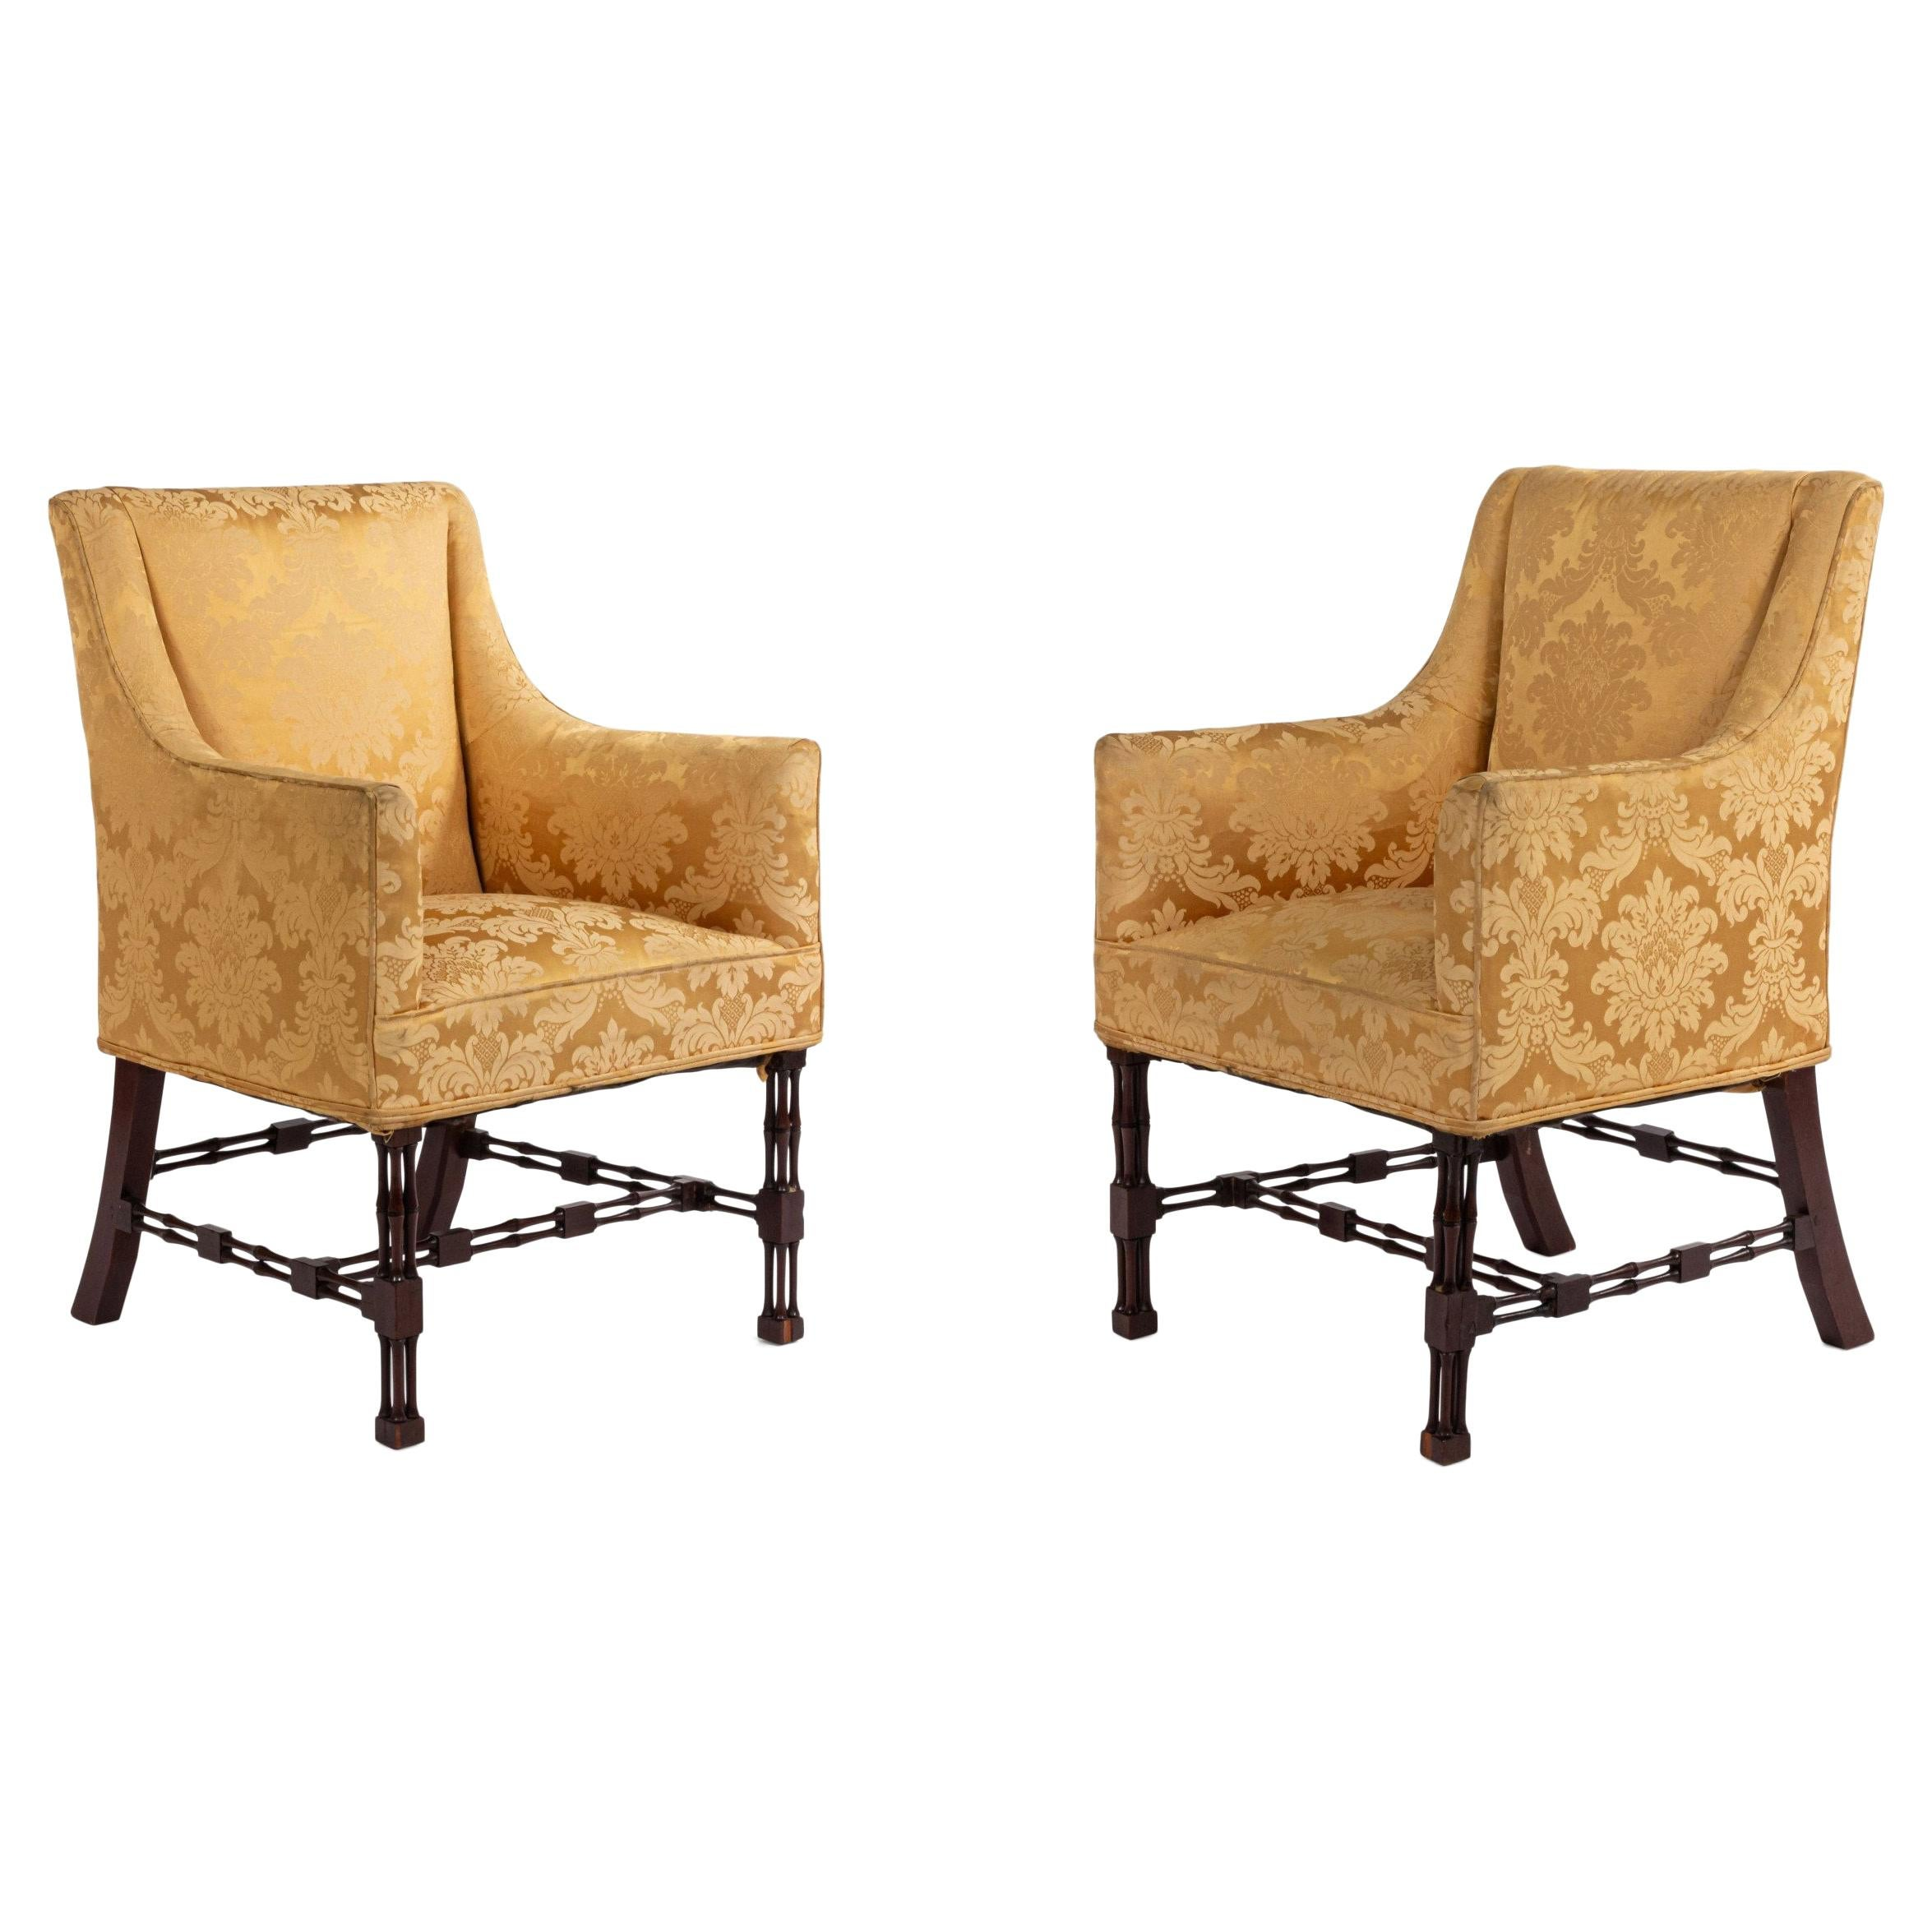 Chinese Chippendale Bergere Arm Chairs